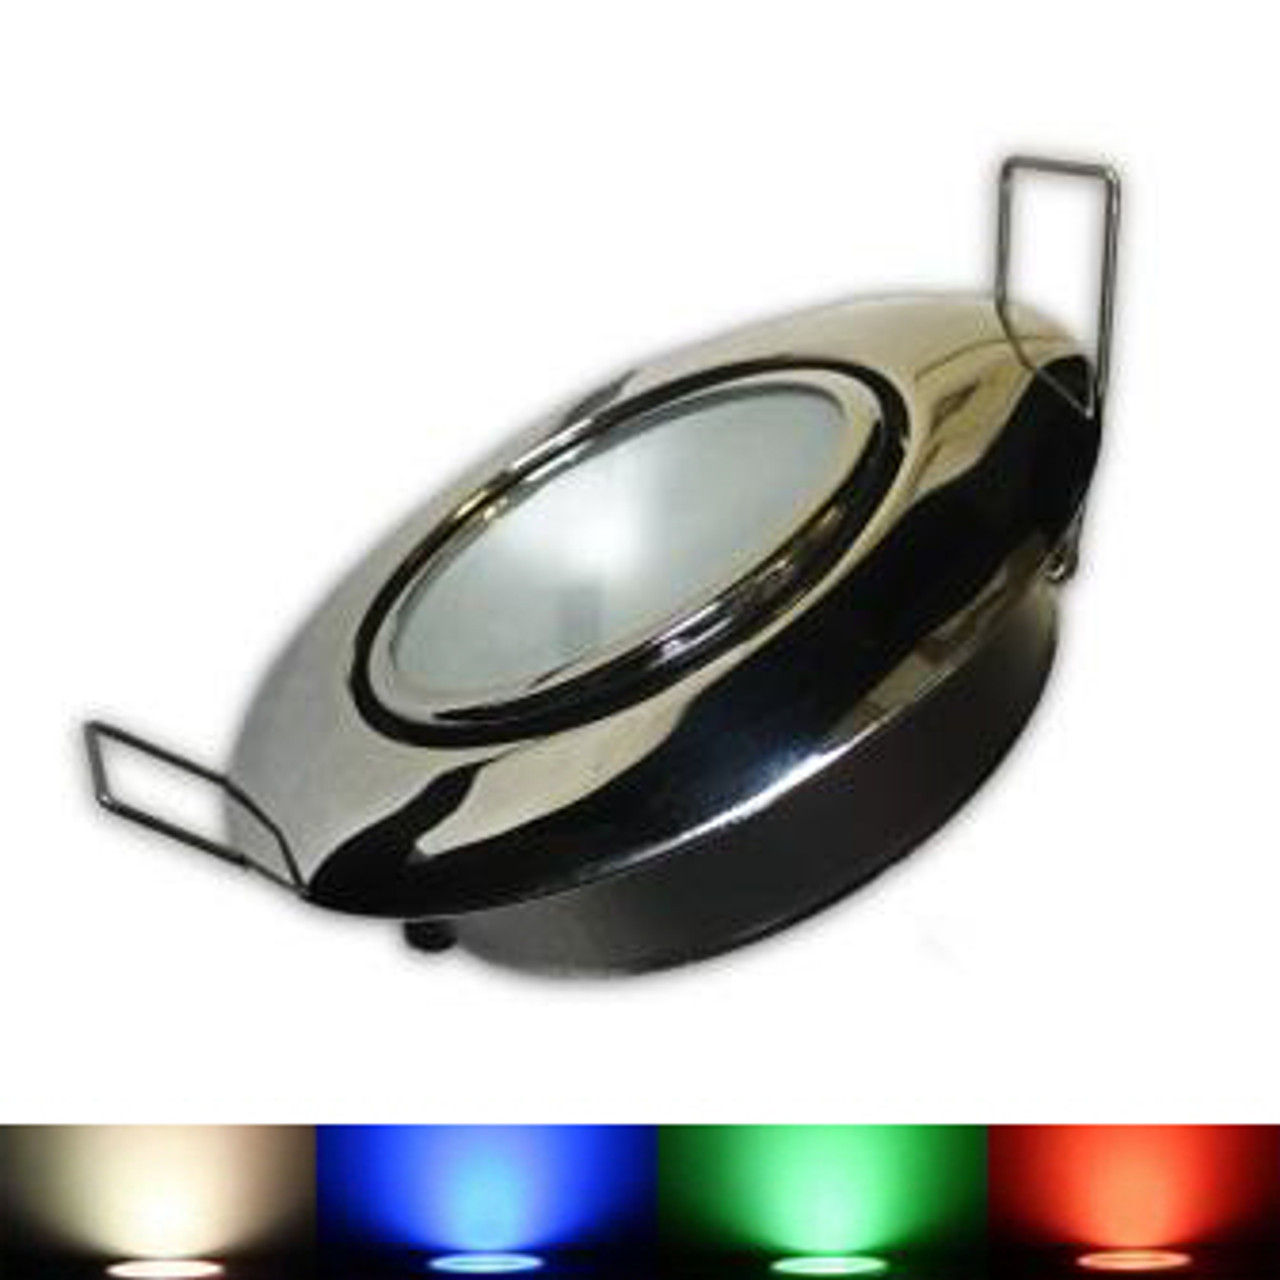 RGBW LED Downlight for boats.  Red, Green, Blue, White